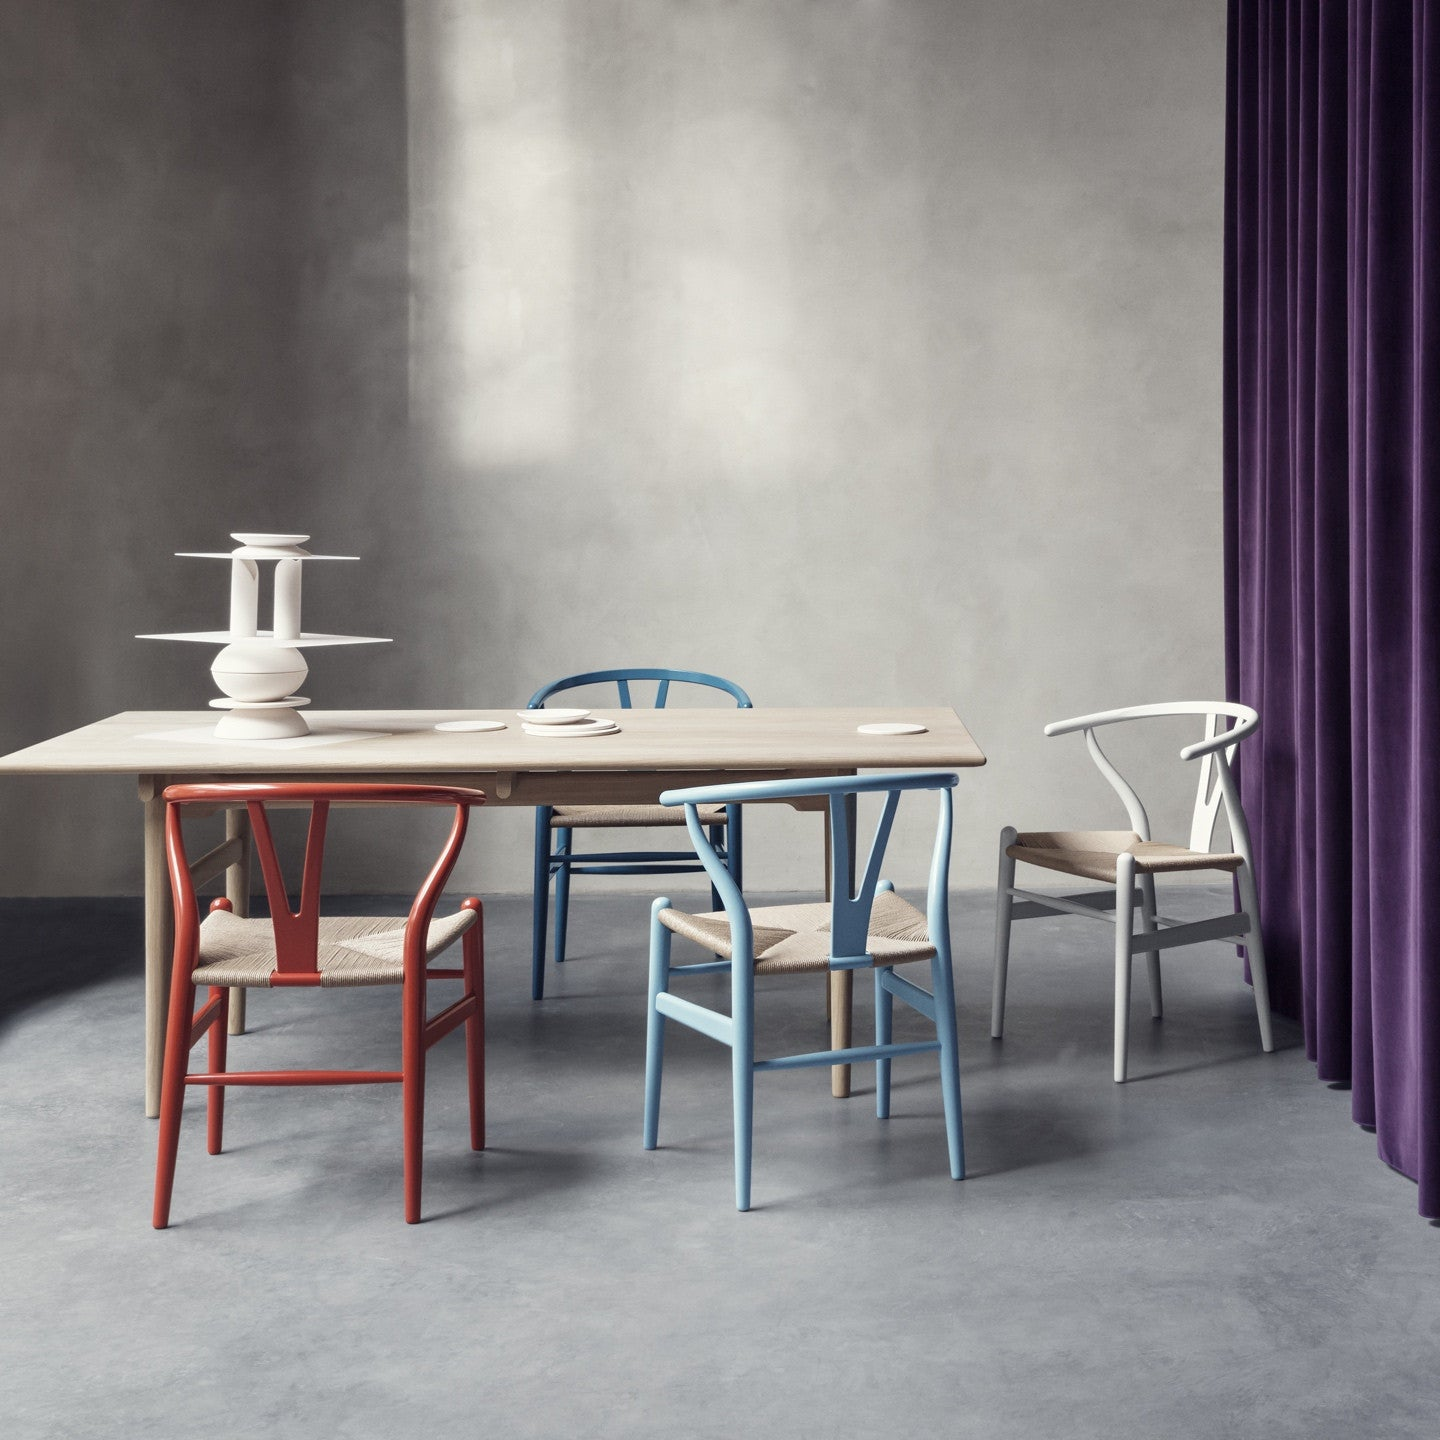 ch24 wishbone chair in colour by carl hansen haus